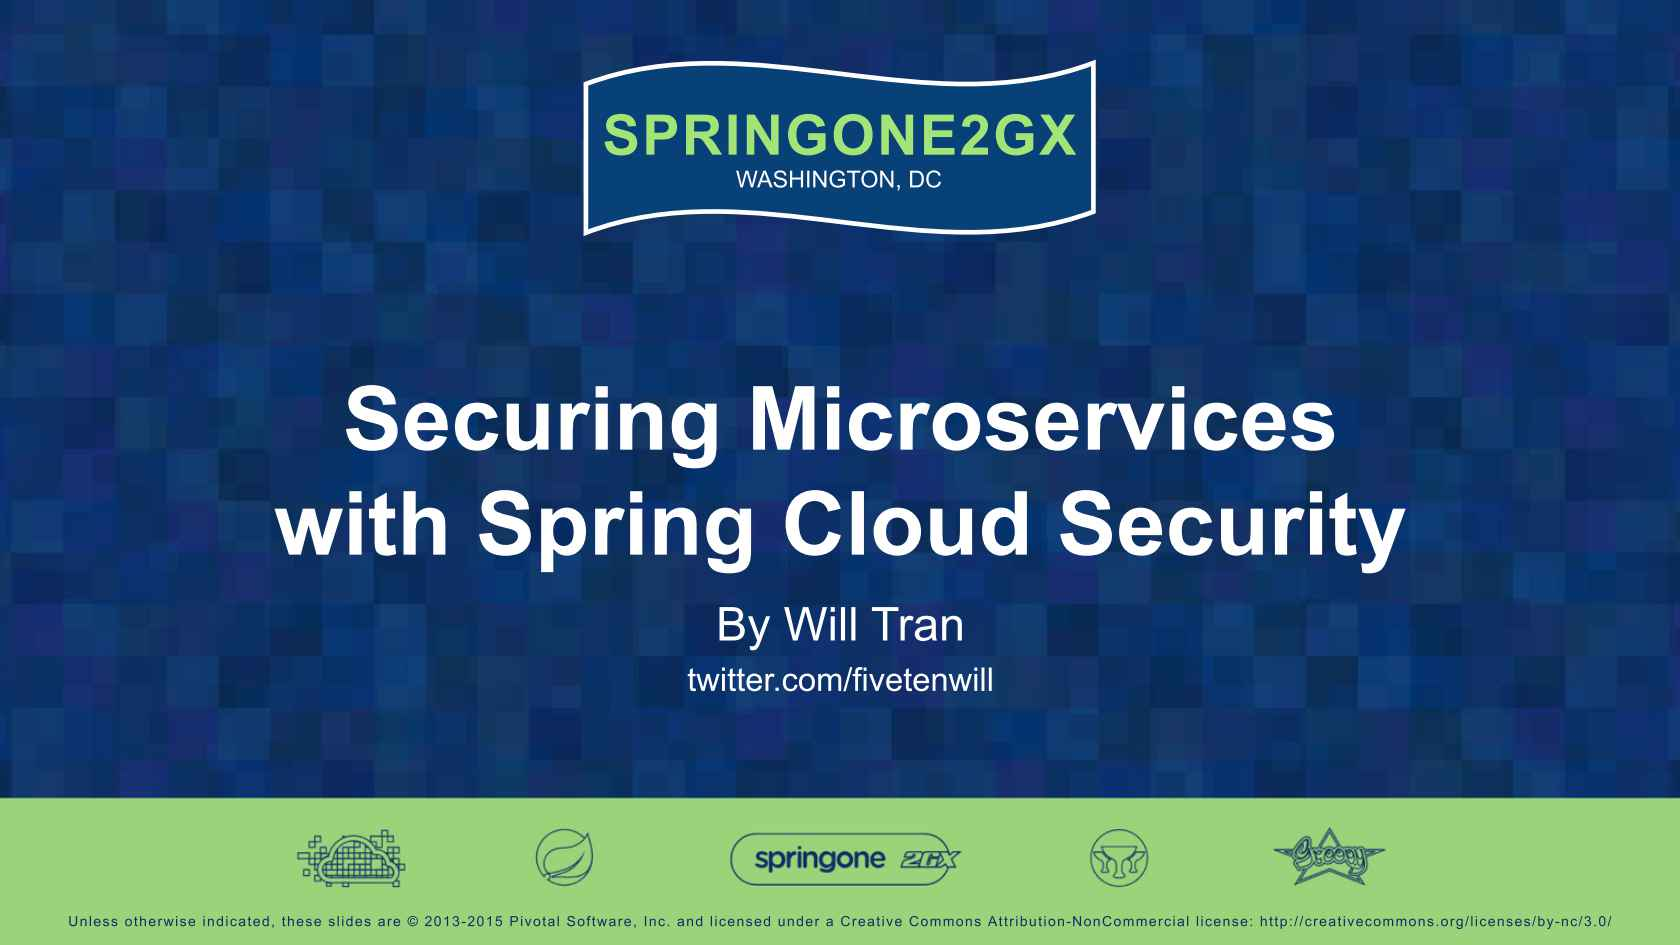 Securing Microservices with Spring